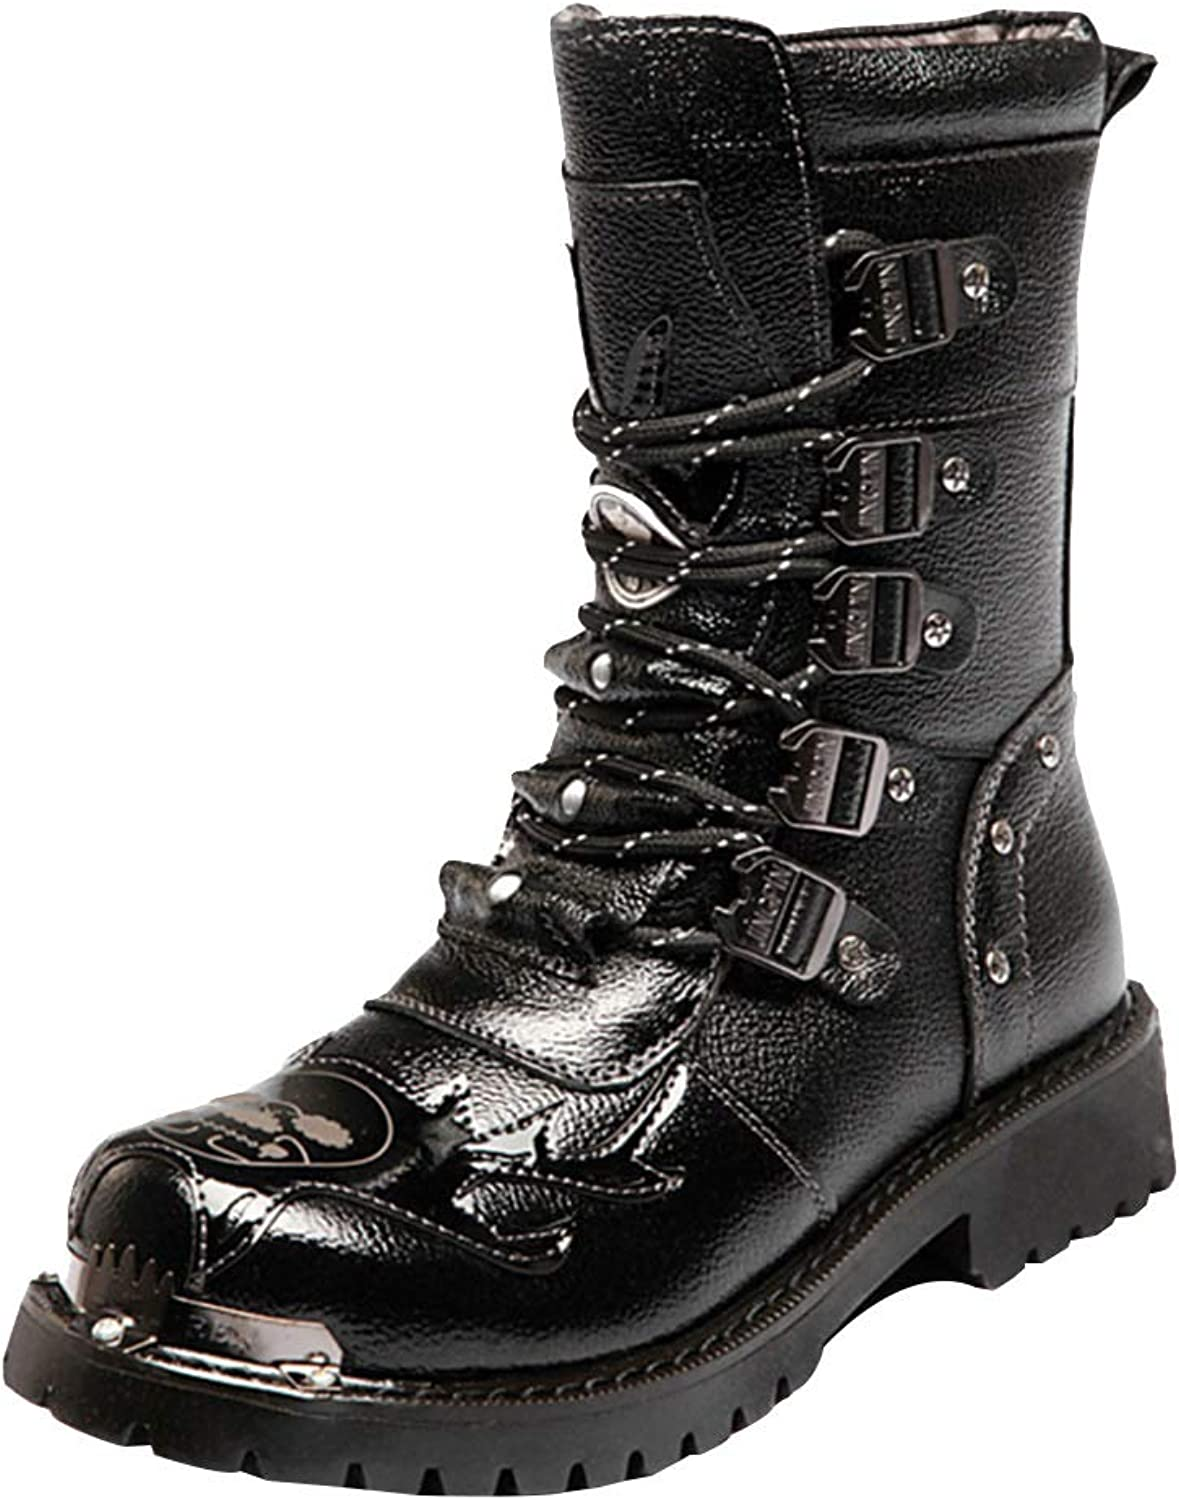 Waterproof High Boots Men's Warm Martin shoes Wear Non-Slip Boots